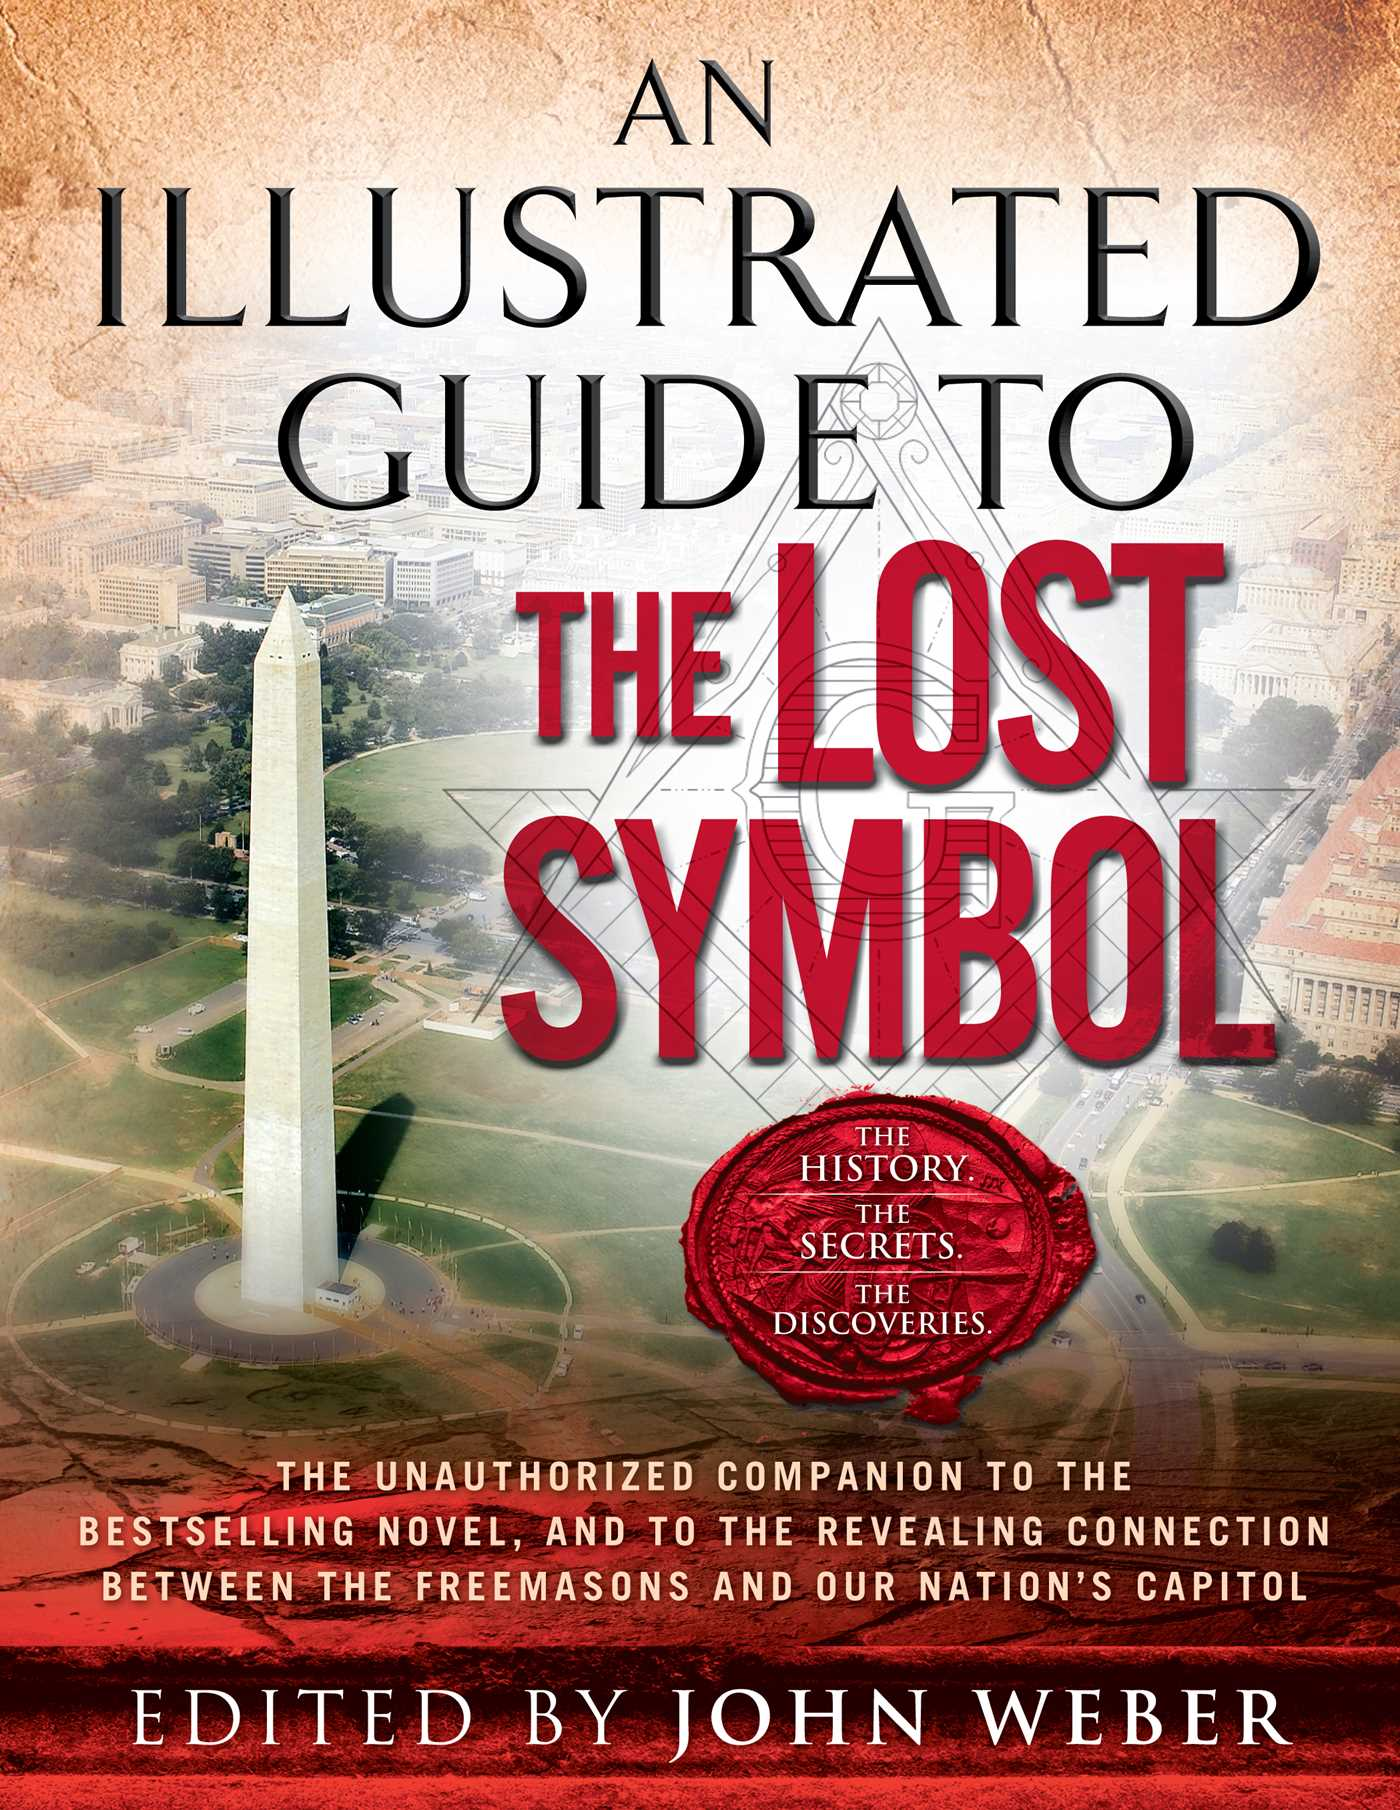 An illustrated guide to the lost symbol ebook by john weber an illustrated guide to the lost symbol 9781439180655 hr buycottarizona